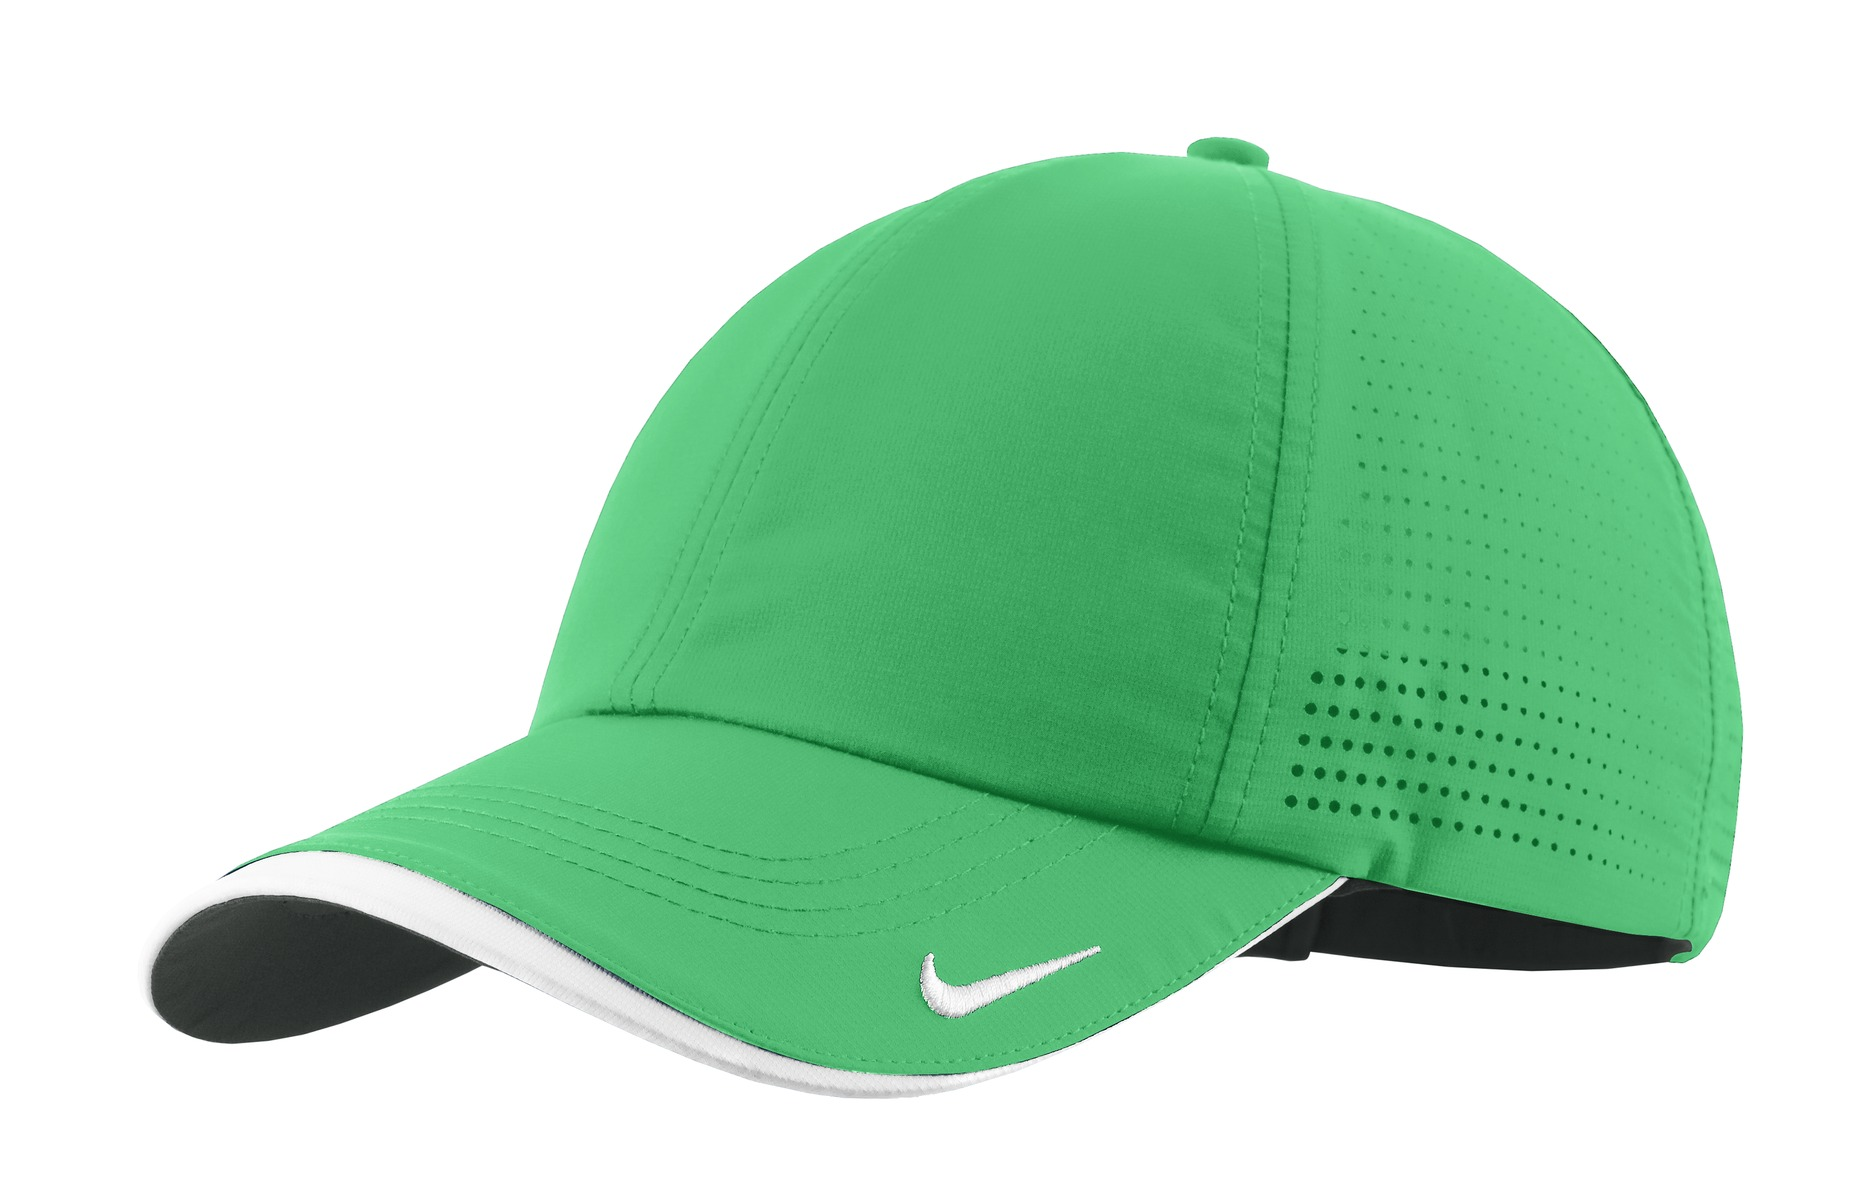 Nike Dri-FIT Swoosh Perforated Cap. 429467 - Lucky Green